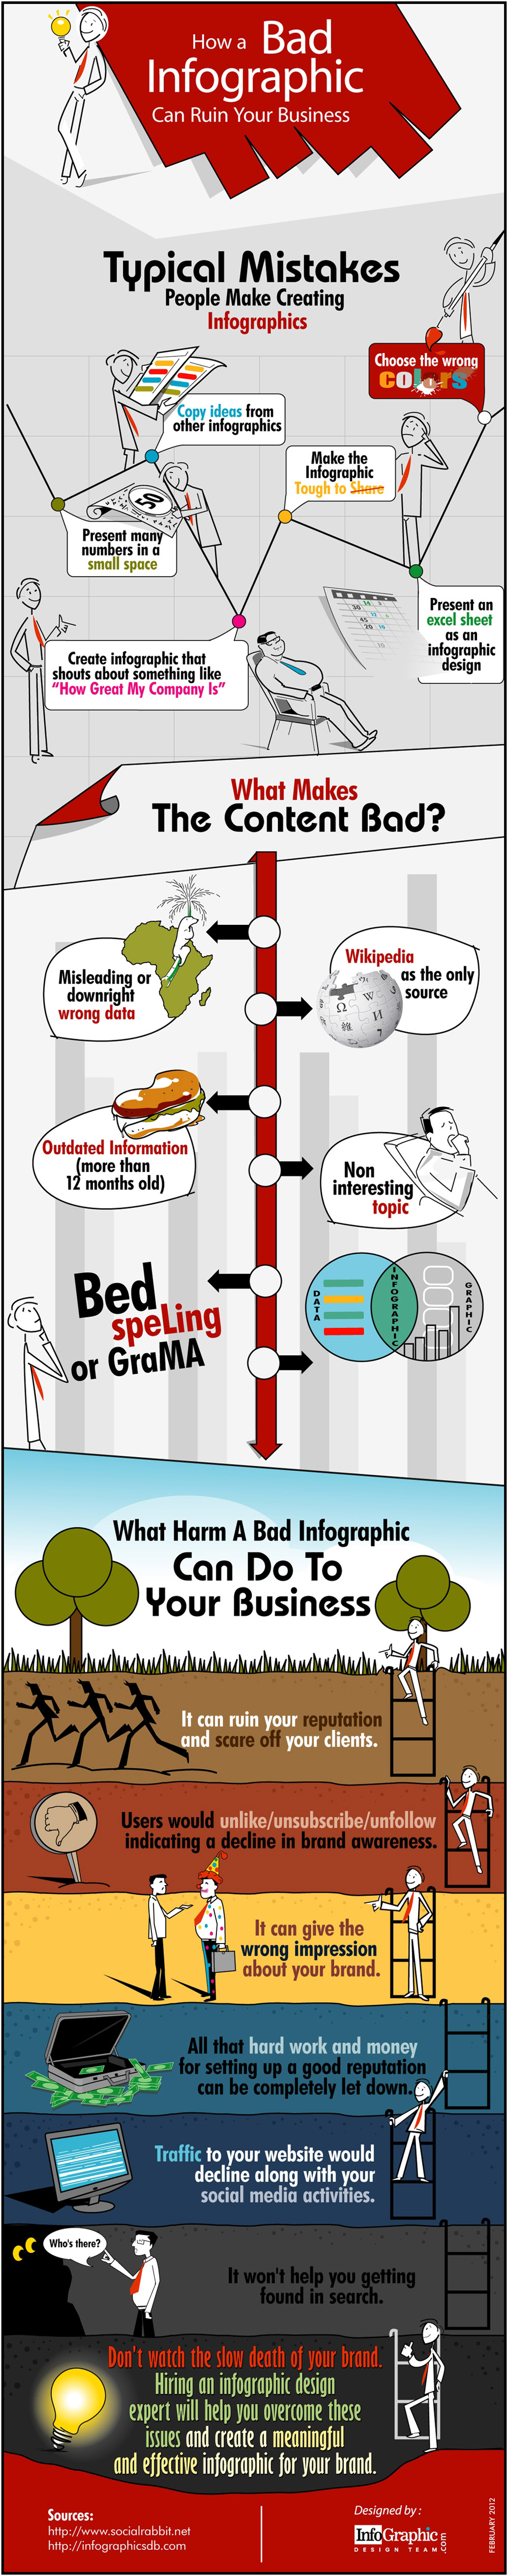 How a Bad Infographic Can Ruin Your Business